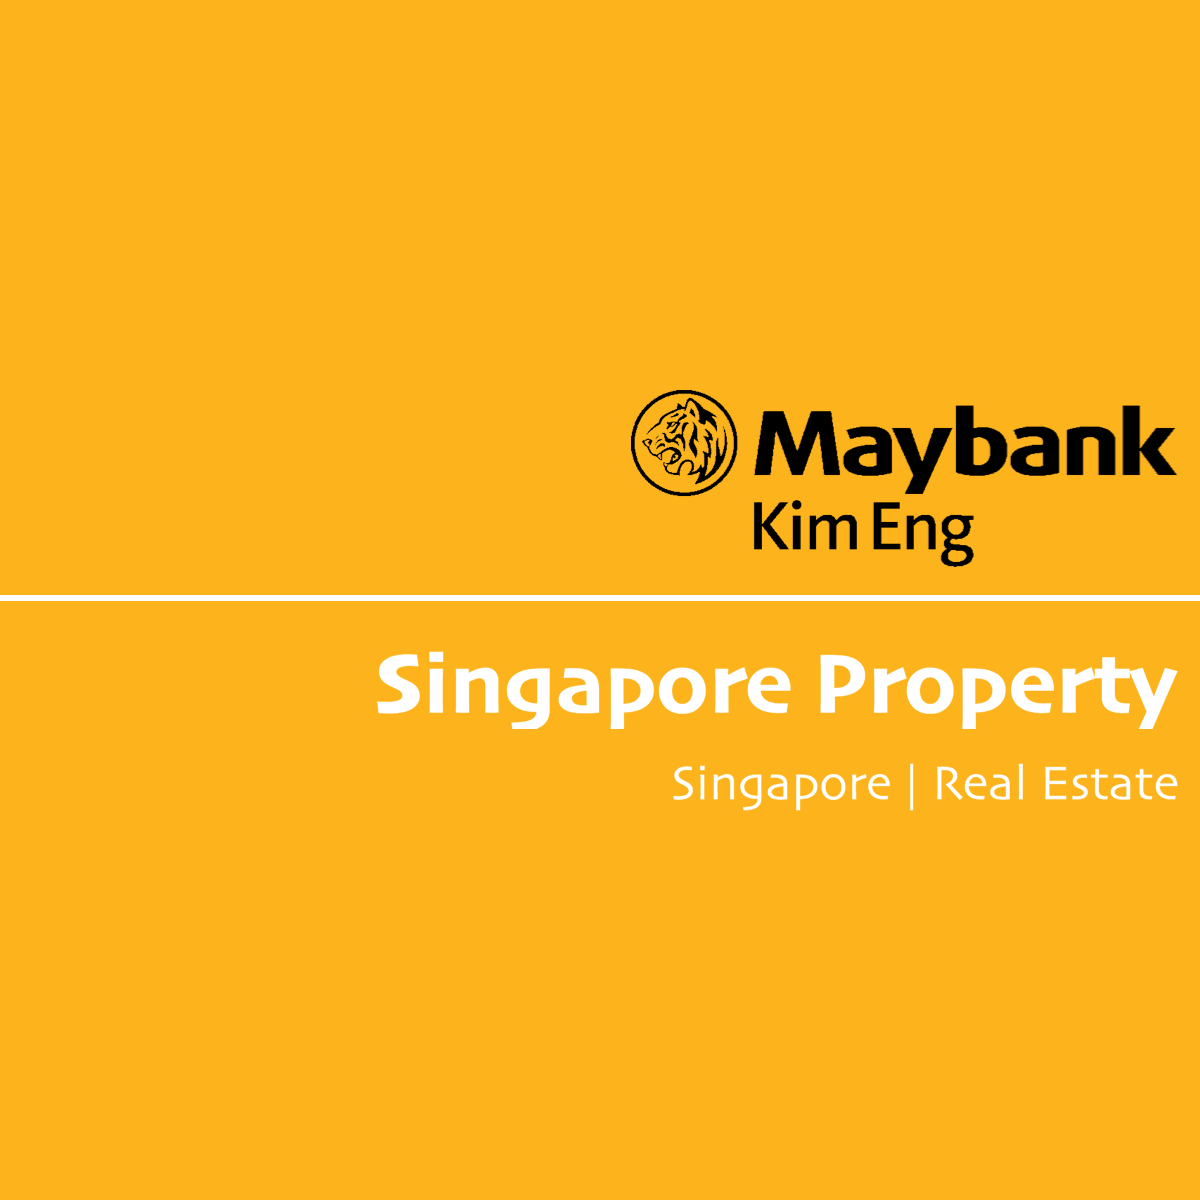 Singapore Property - Maybank Kim Eng 2017-07-06: Hong Kong Marketing Feedback